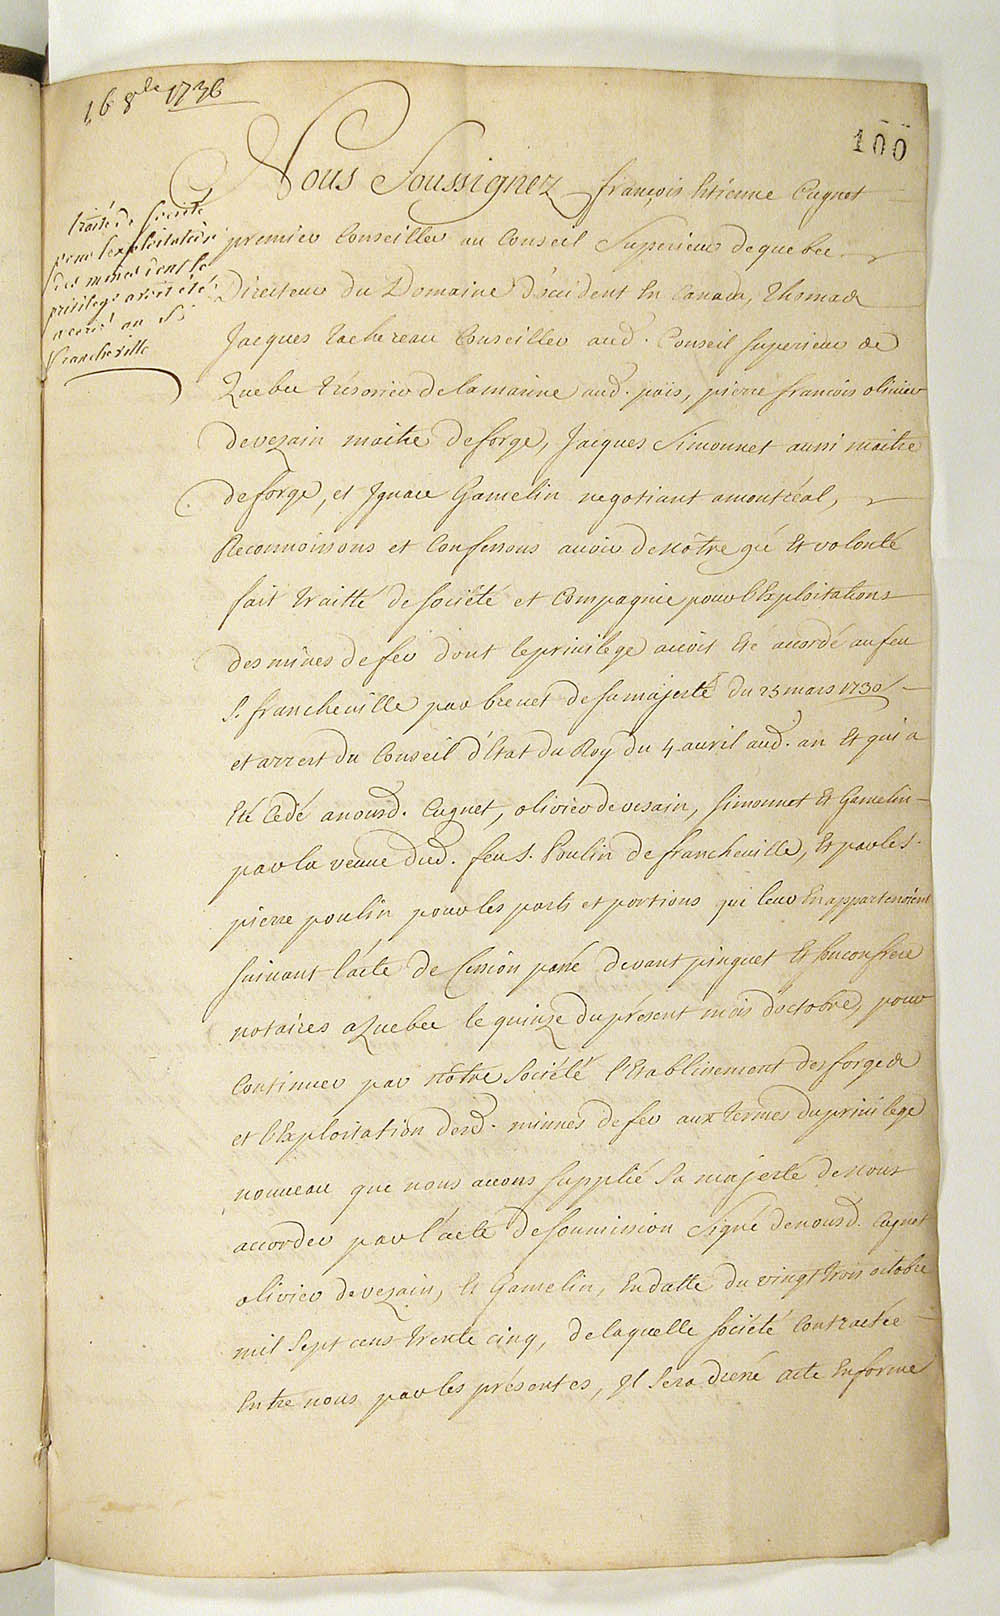 Company agreement between François-Étienne Cugnet, Thomas-Jacques Taschereau, Pierre-François Olivier de Vézin, Jacques Simonet d'Abergemont and Ignace Gamelin concerning the iron mines and ironworks of Saint-Maurice, October 16, 1736, FR CAOM COL C11A 110 fol. 100-103